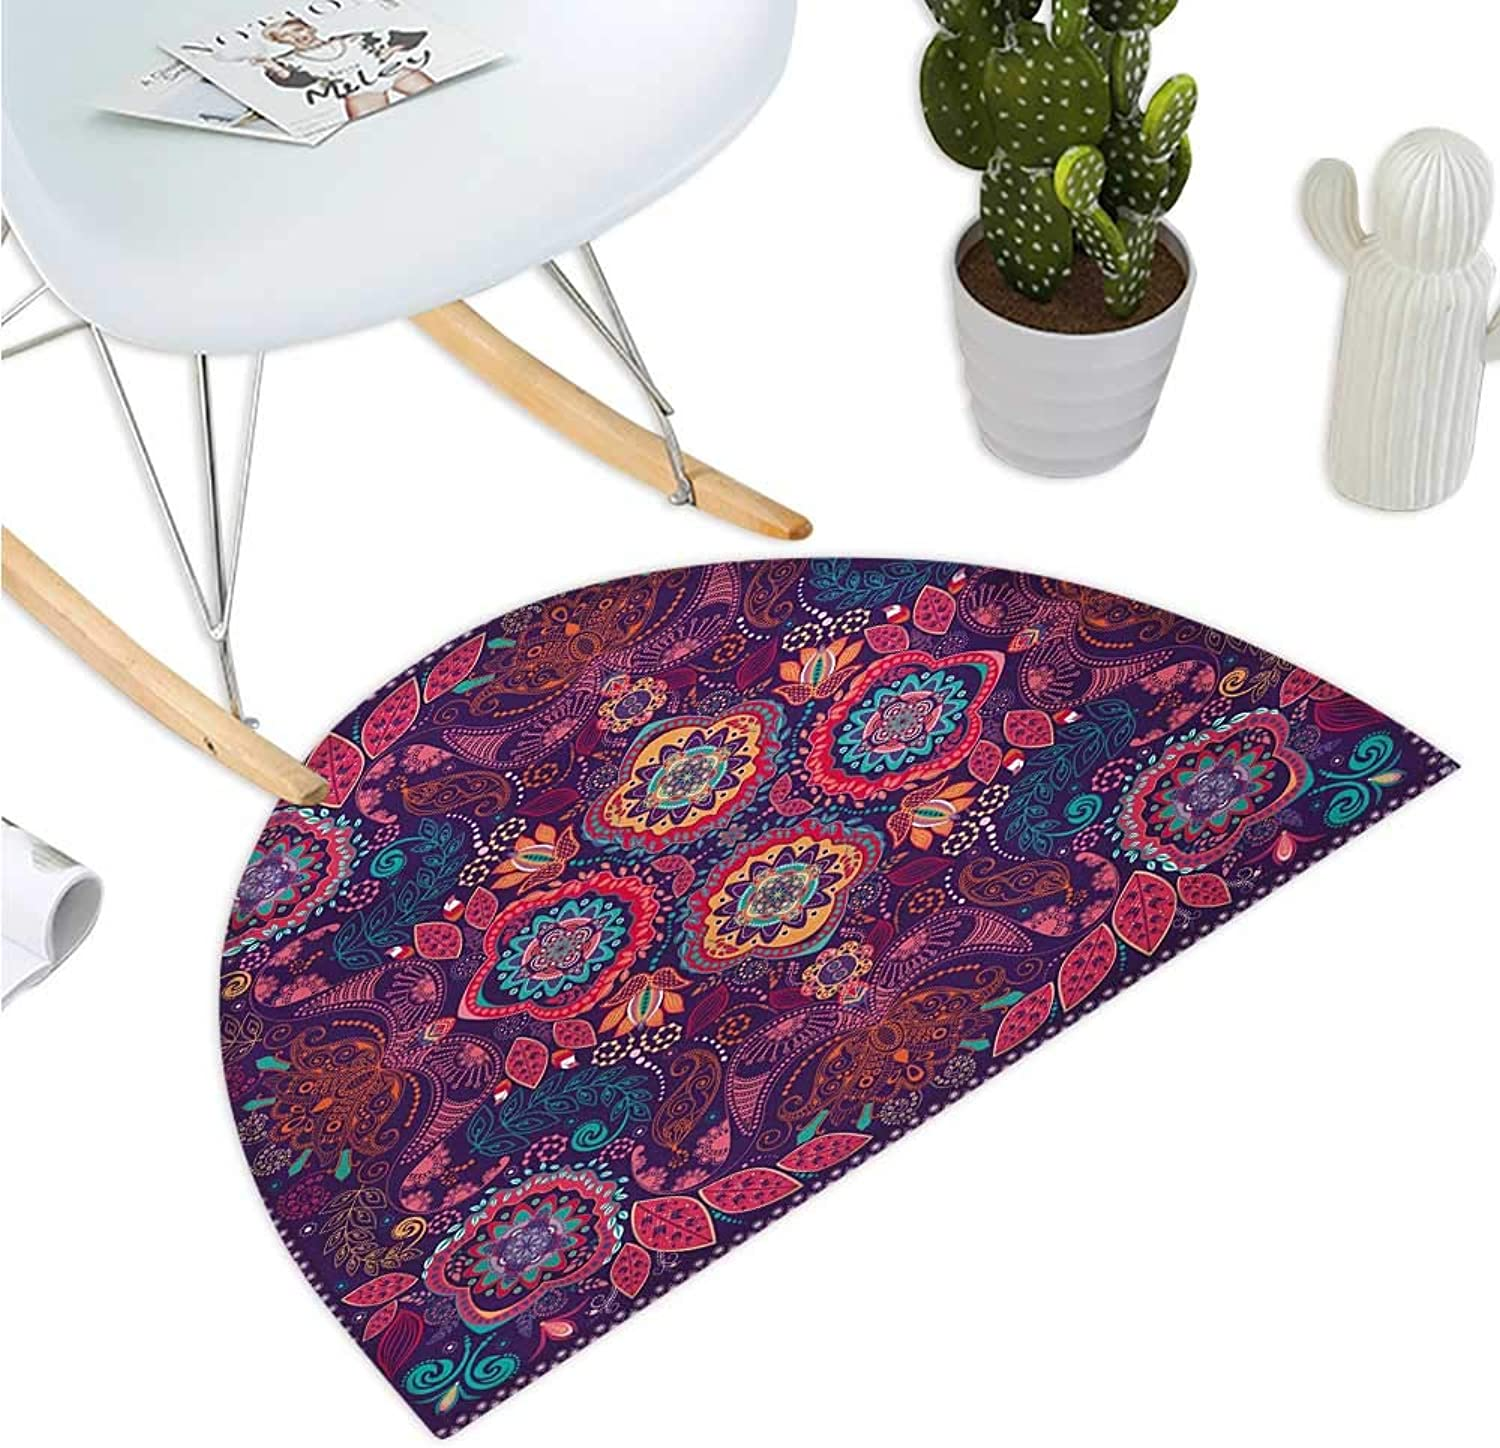 Paisley Semicircular Cushion Modern Classic Ethnic Asian Design with Dots Leaves and Flowers Artistic Print Entry Door Mat H 39.3  xD 59  Multicolor